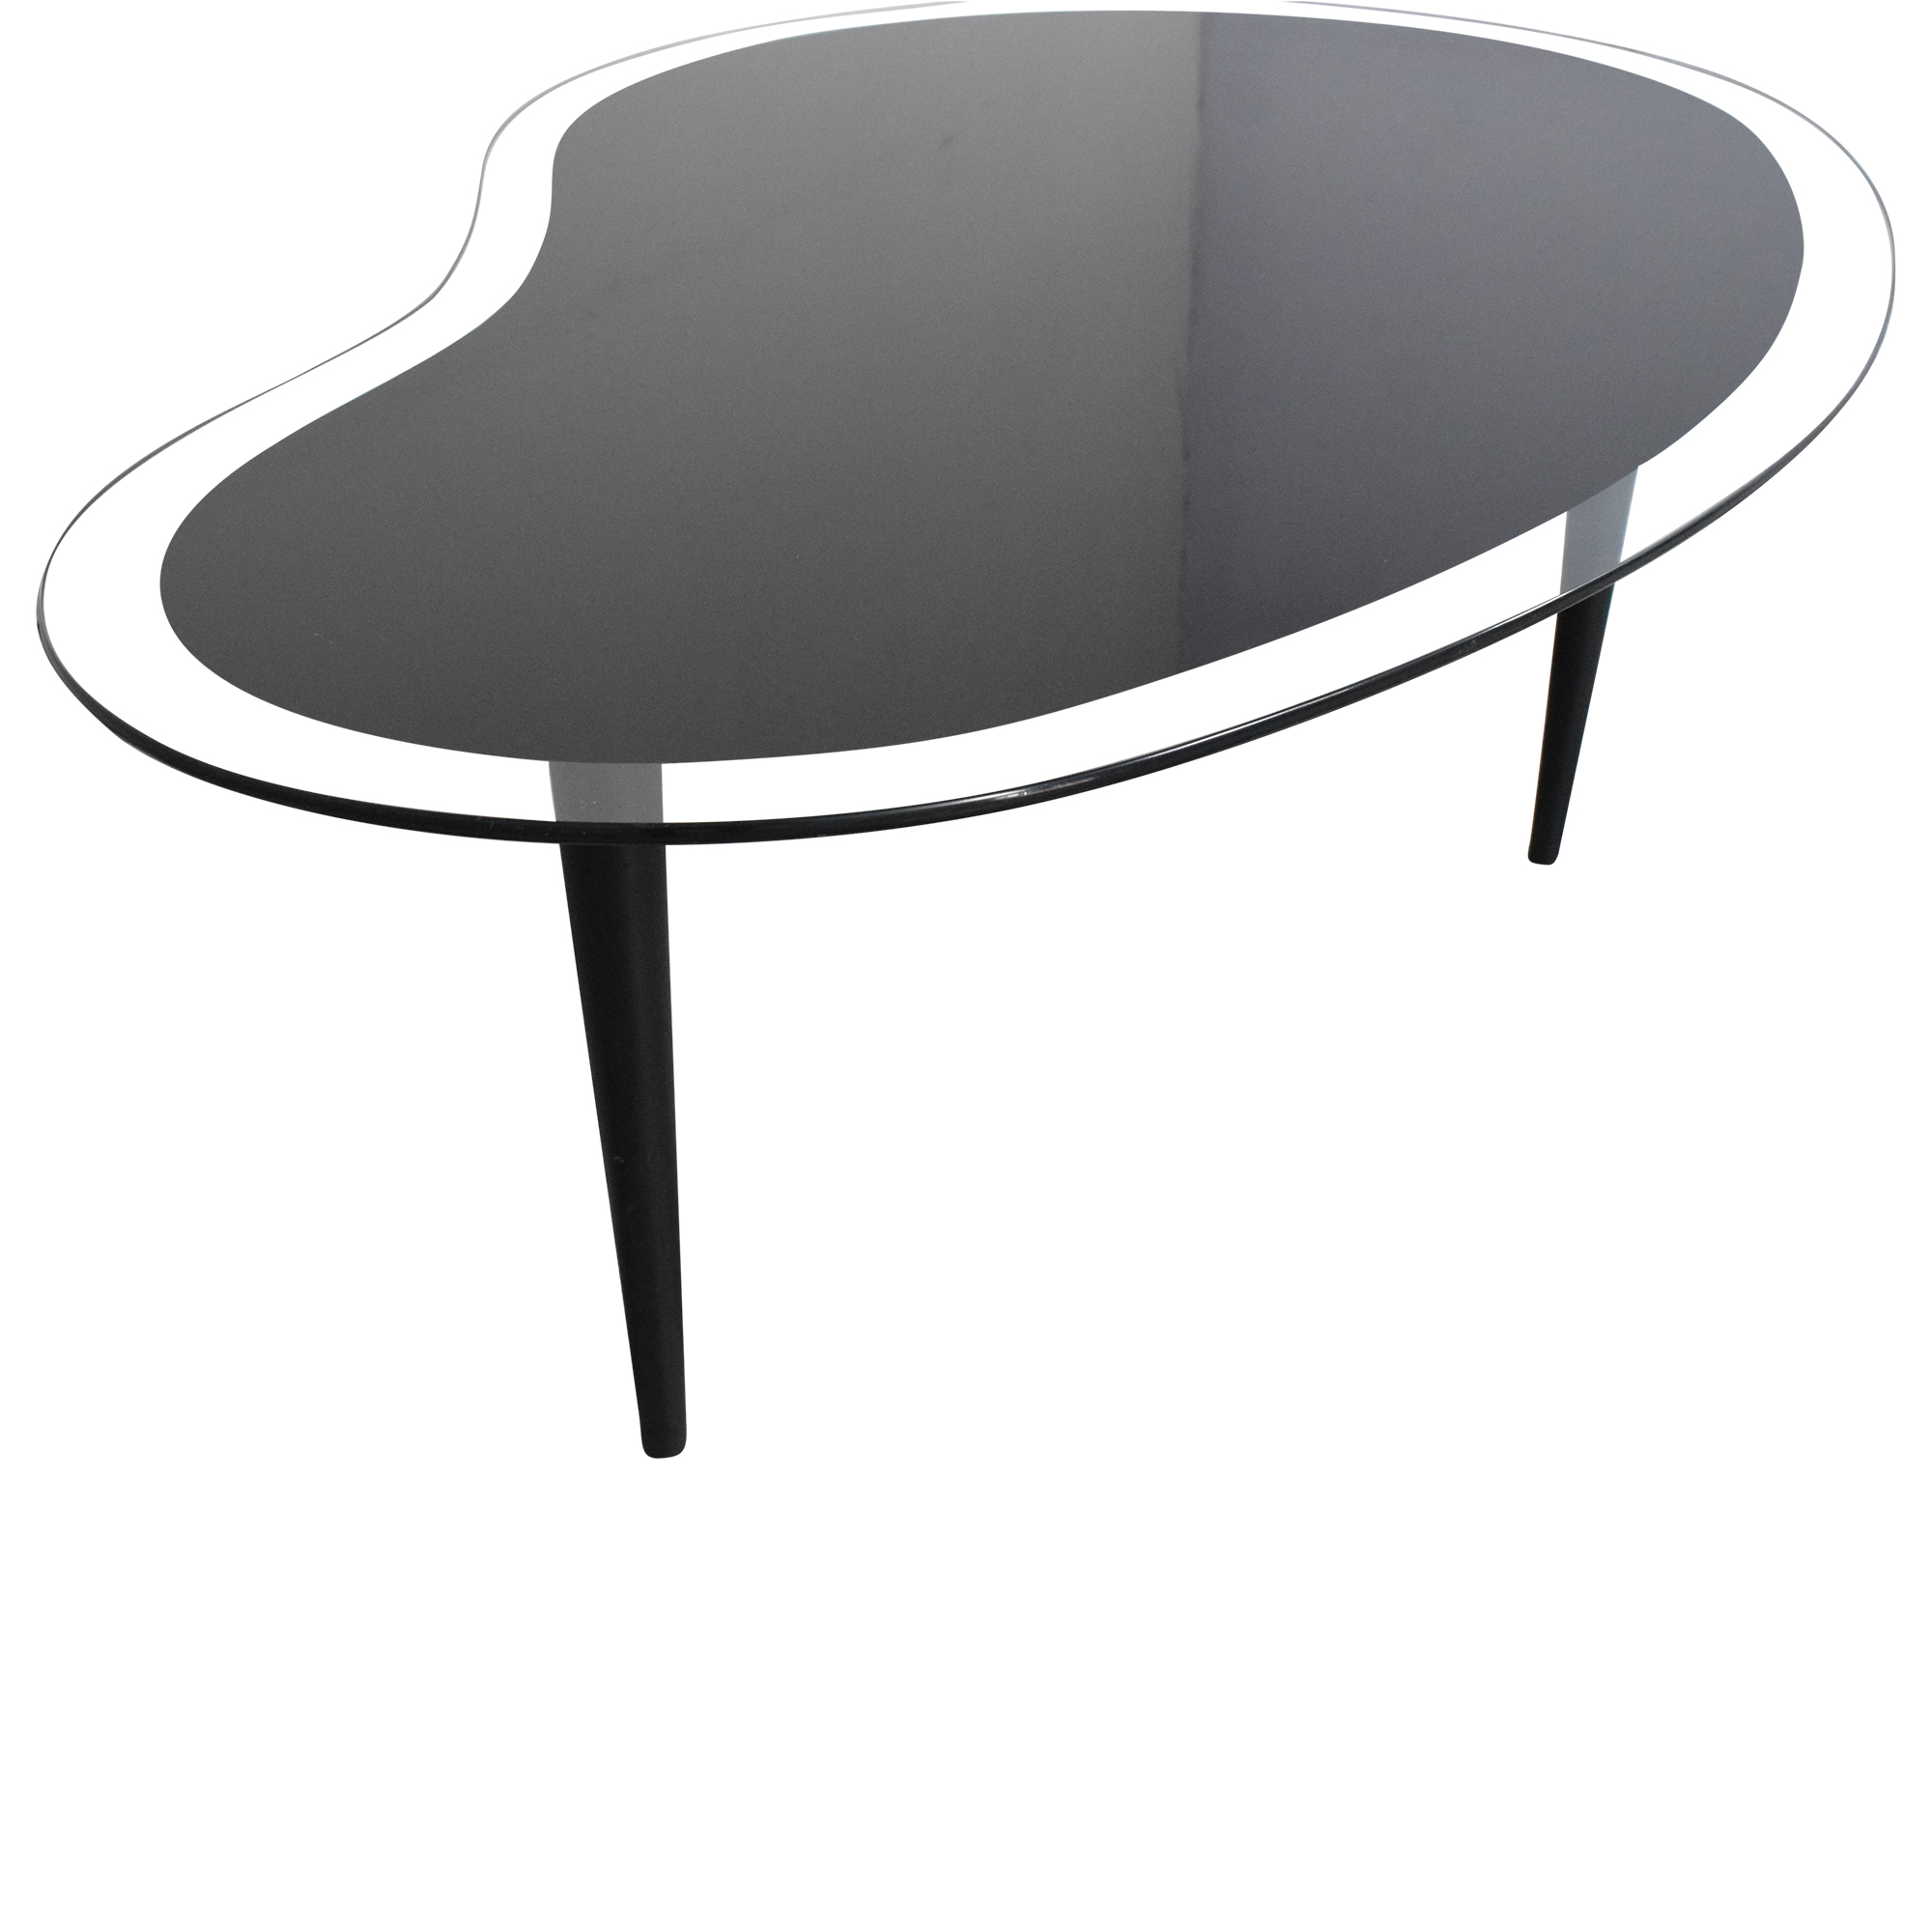 Vintage Kidney Shaped Coffee Table / Tables